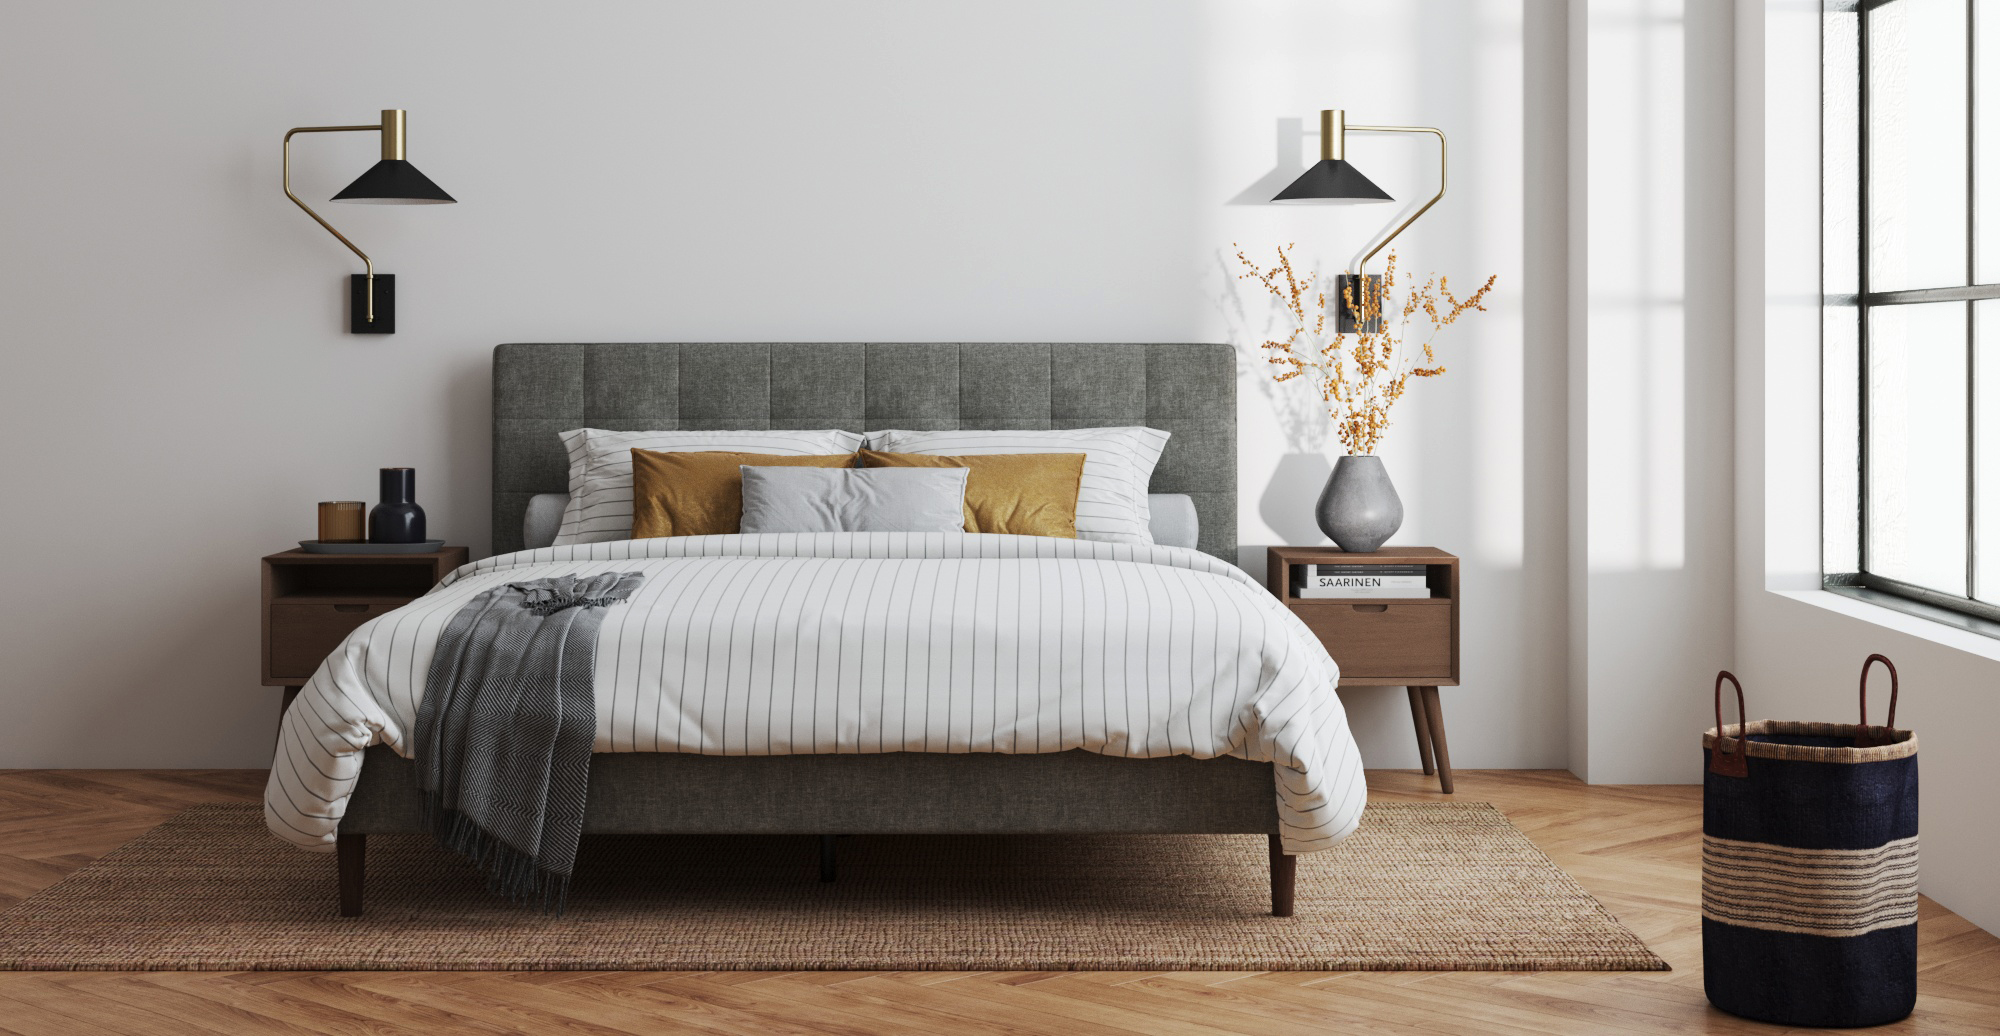 Brosa Richmond King Slim Bed Frame styled in modern contemporary bedroom